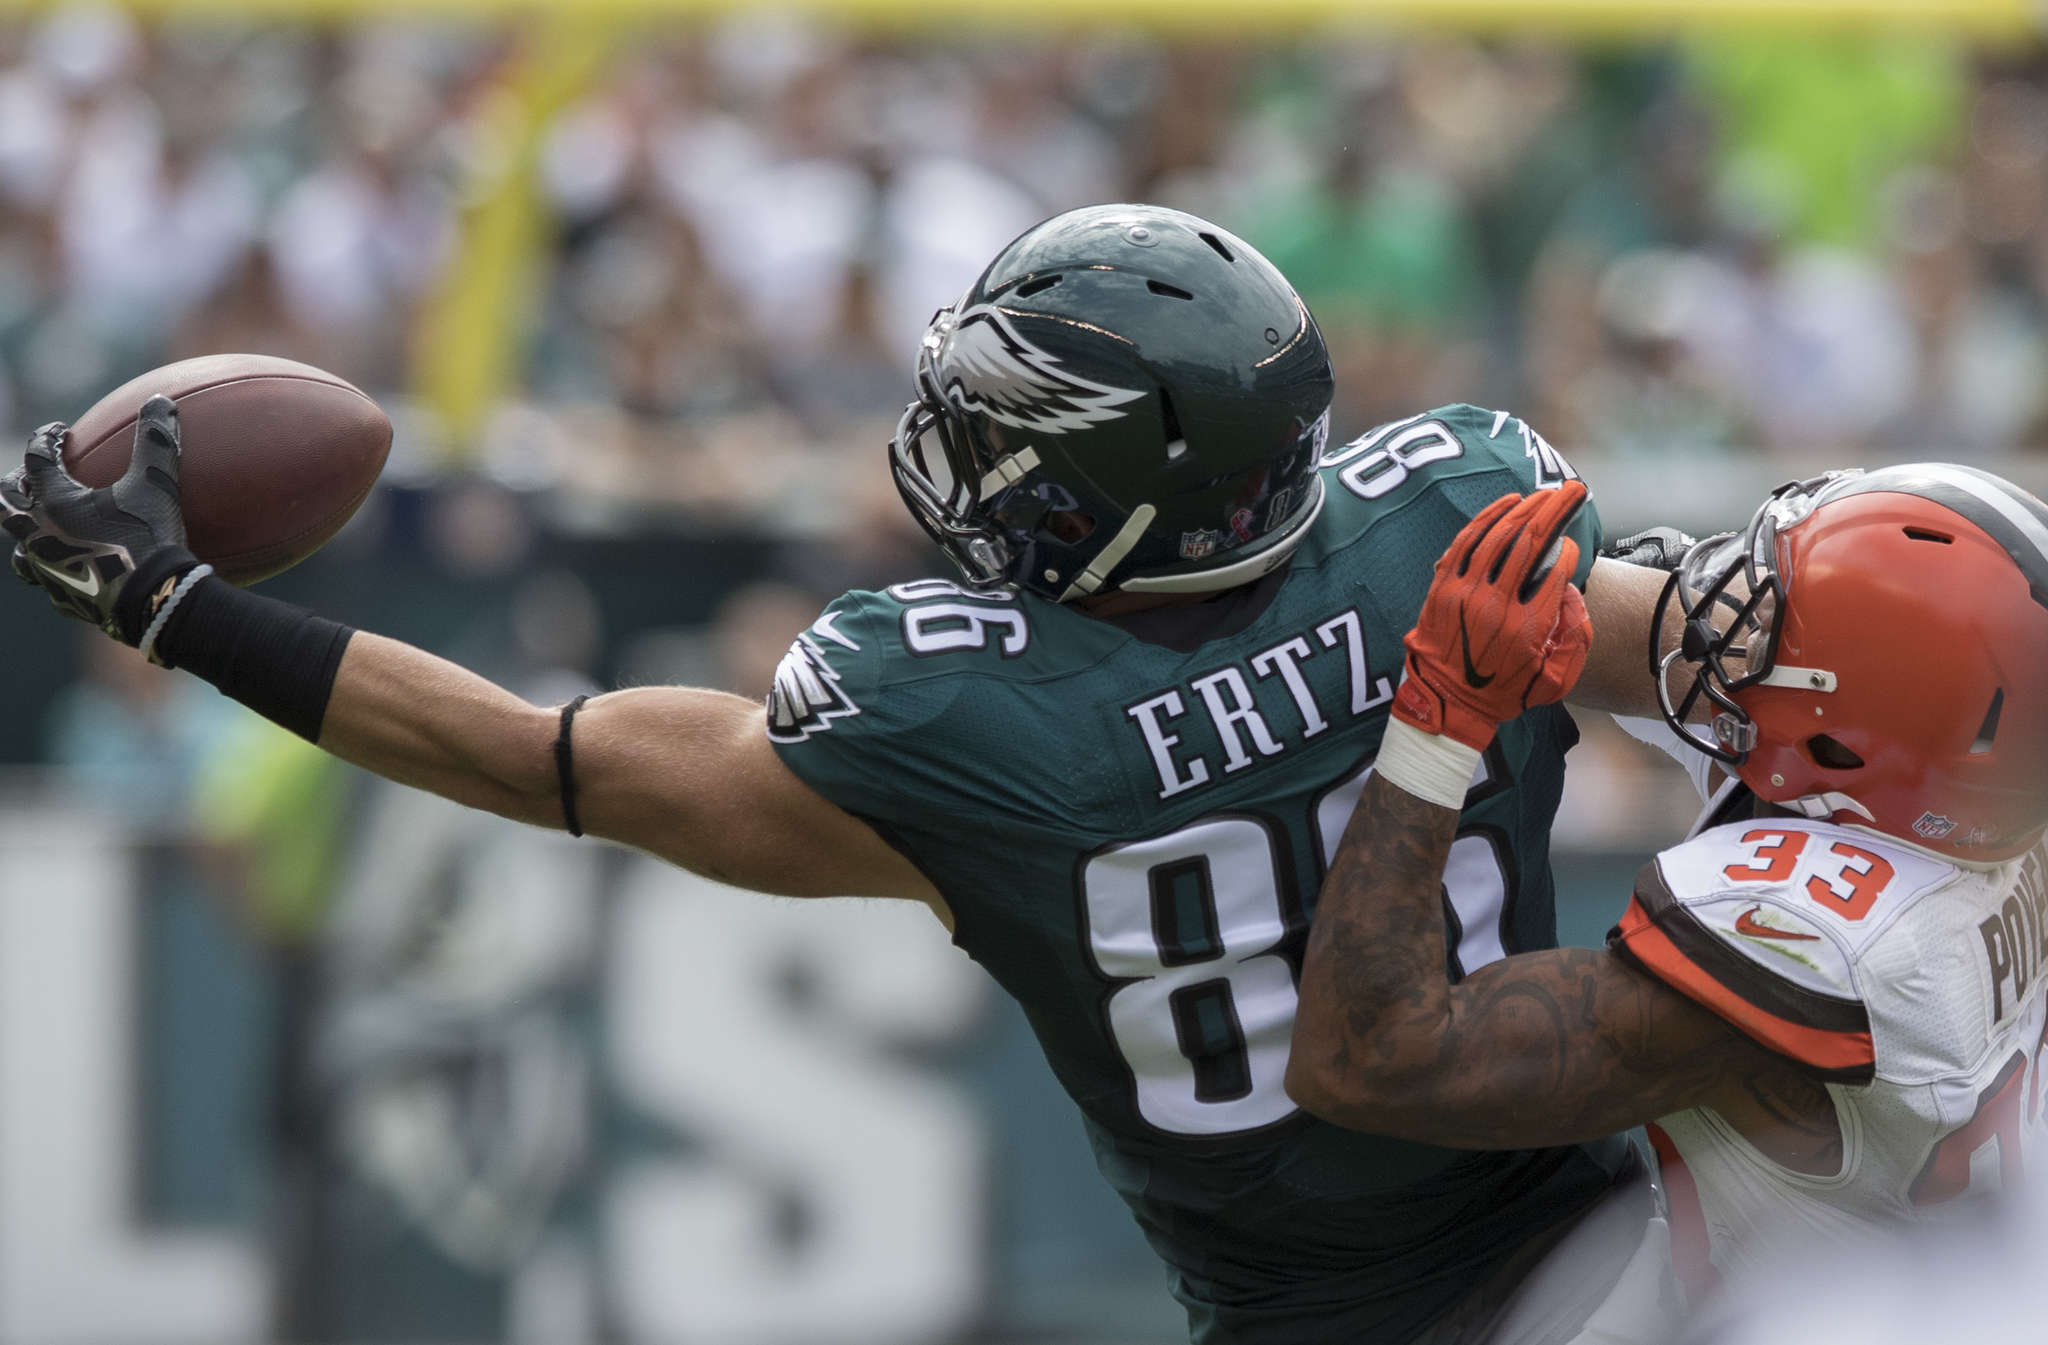 Eagles tight end Zach Ertz makes a one-handed grab against the Browns in the opener Sept. 11. CLEM MURRAY / Staff Photographer